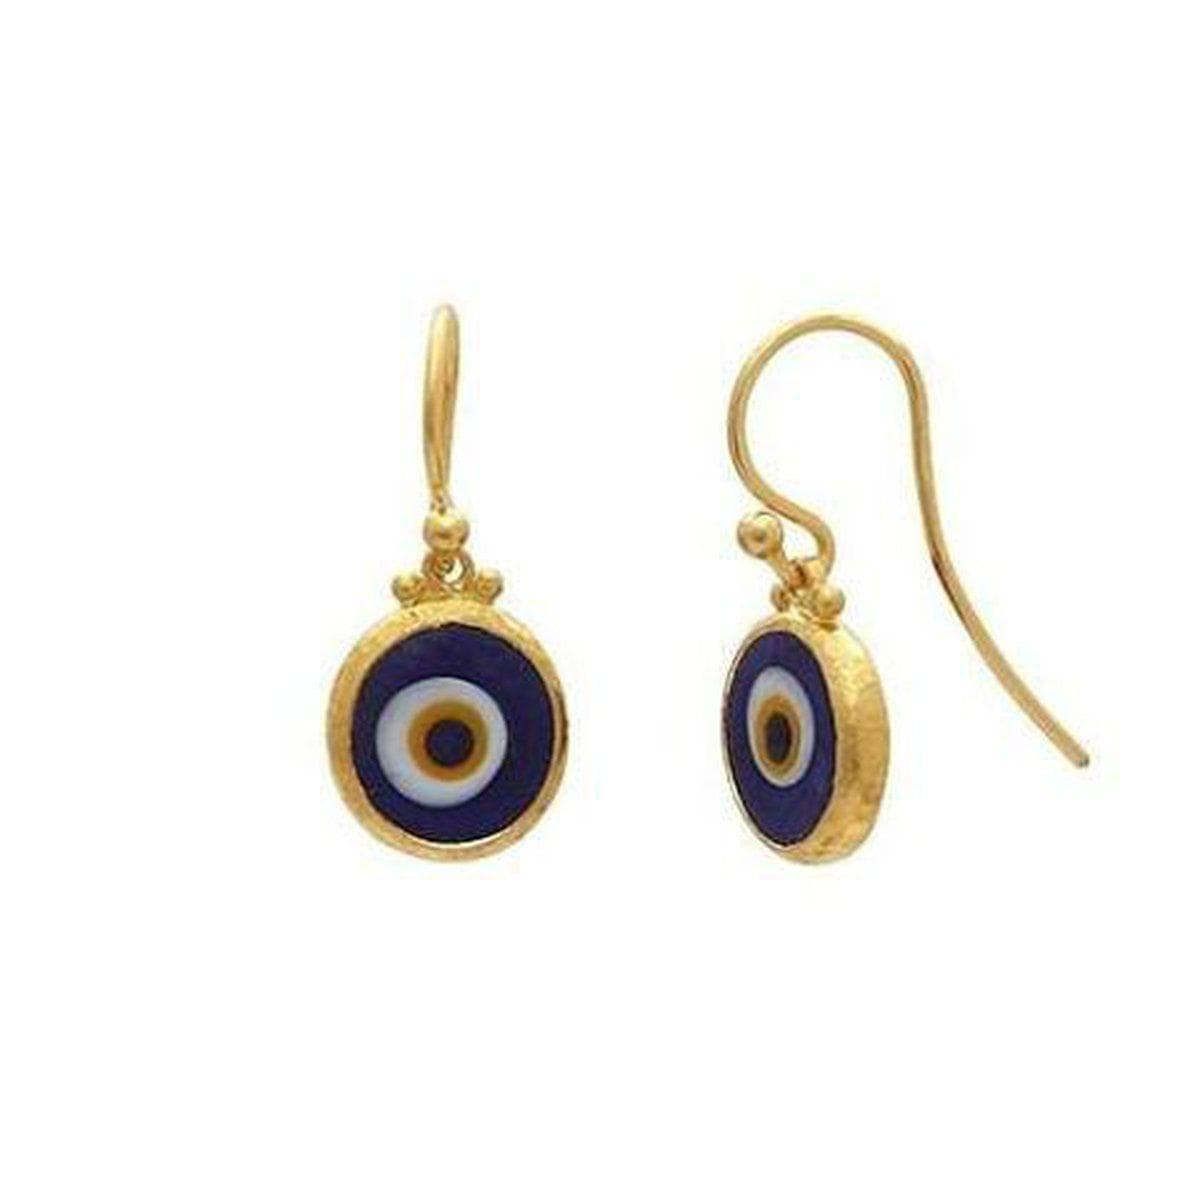 Juju 24K Gold Evil Eye Earrings - EHSG-EED10-SD-GURHAN-Renee Taylor Gallery